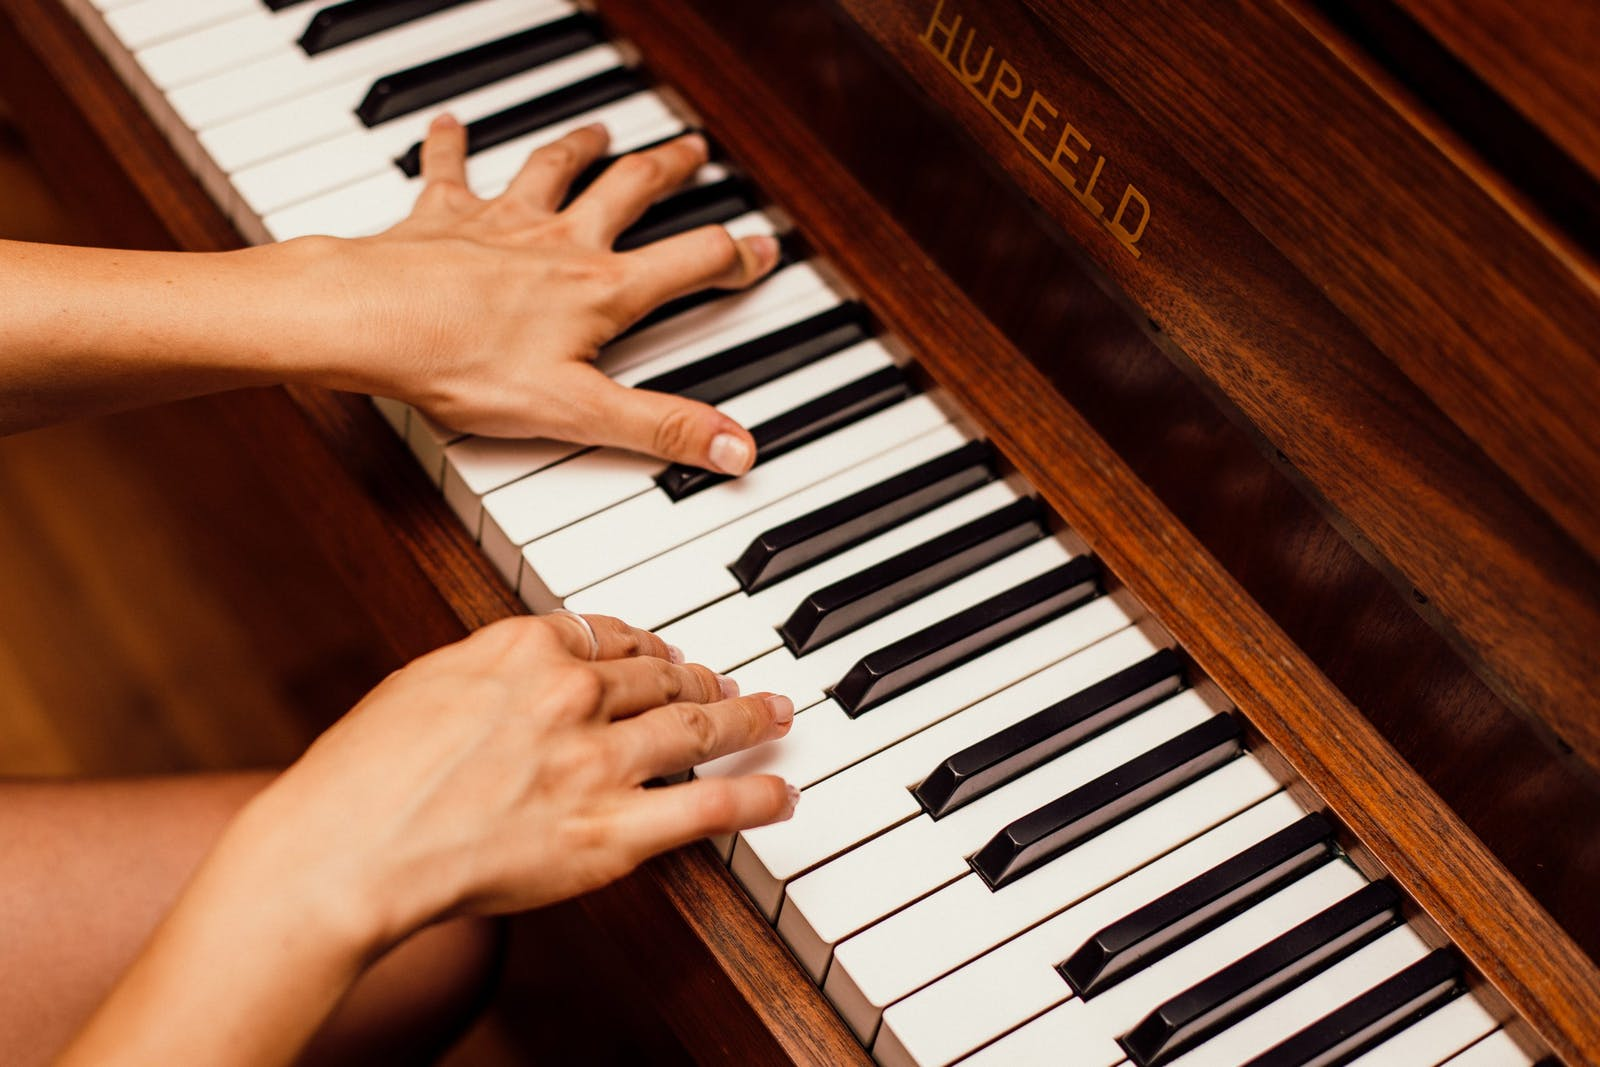 Musician practicing on a Hupfeld piano